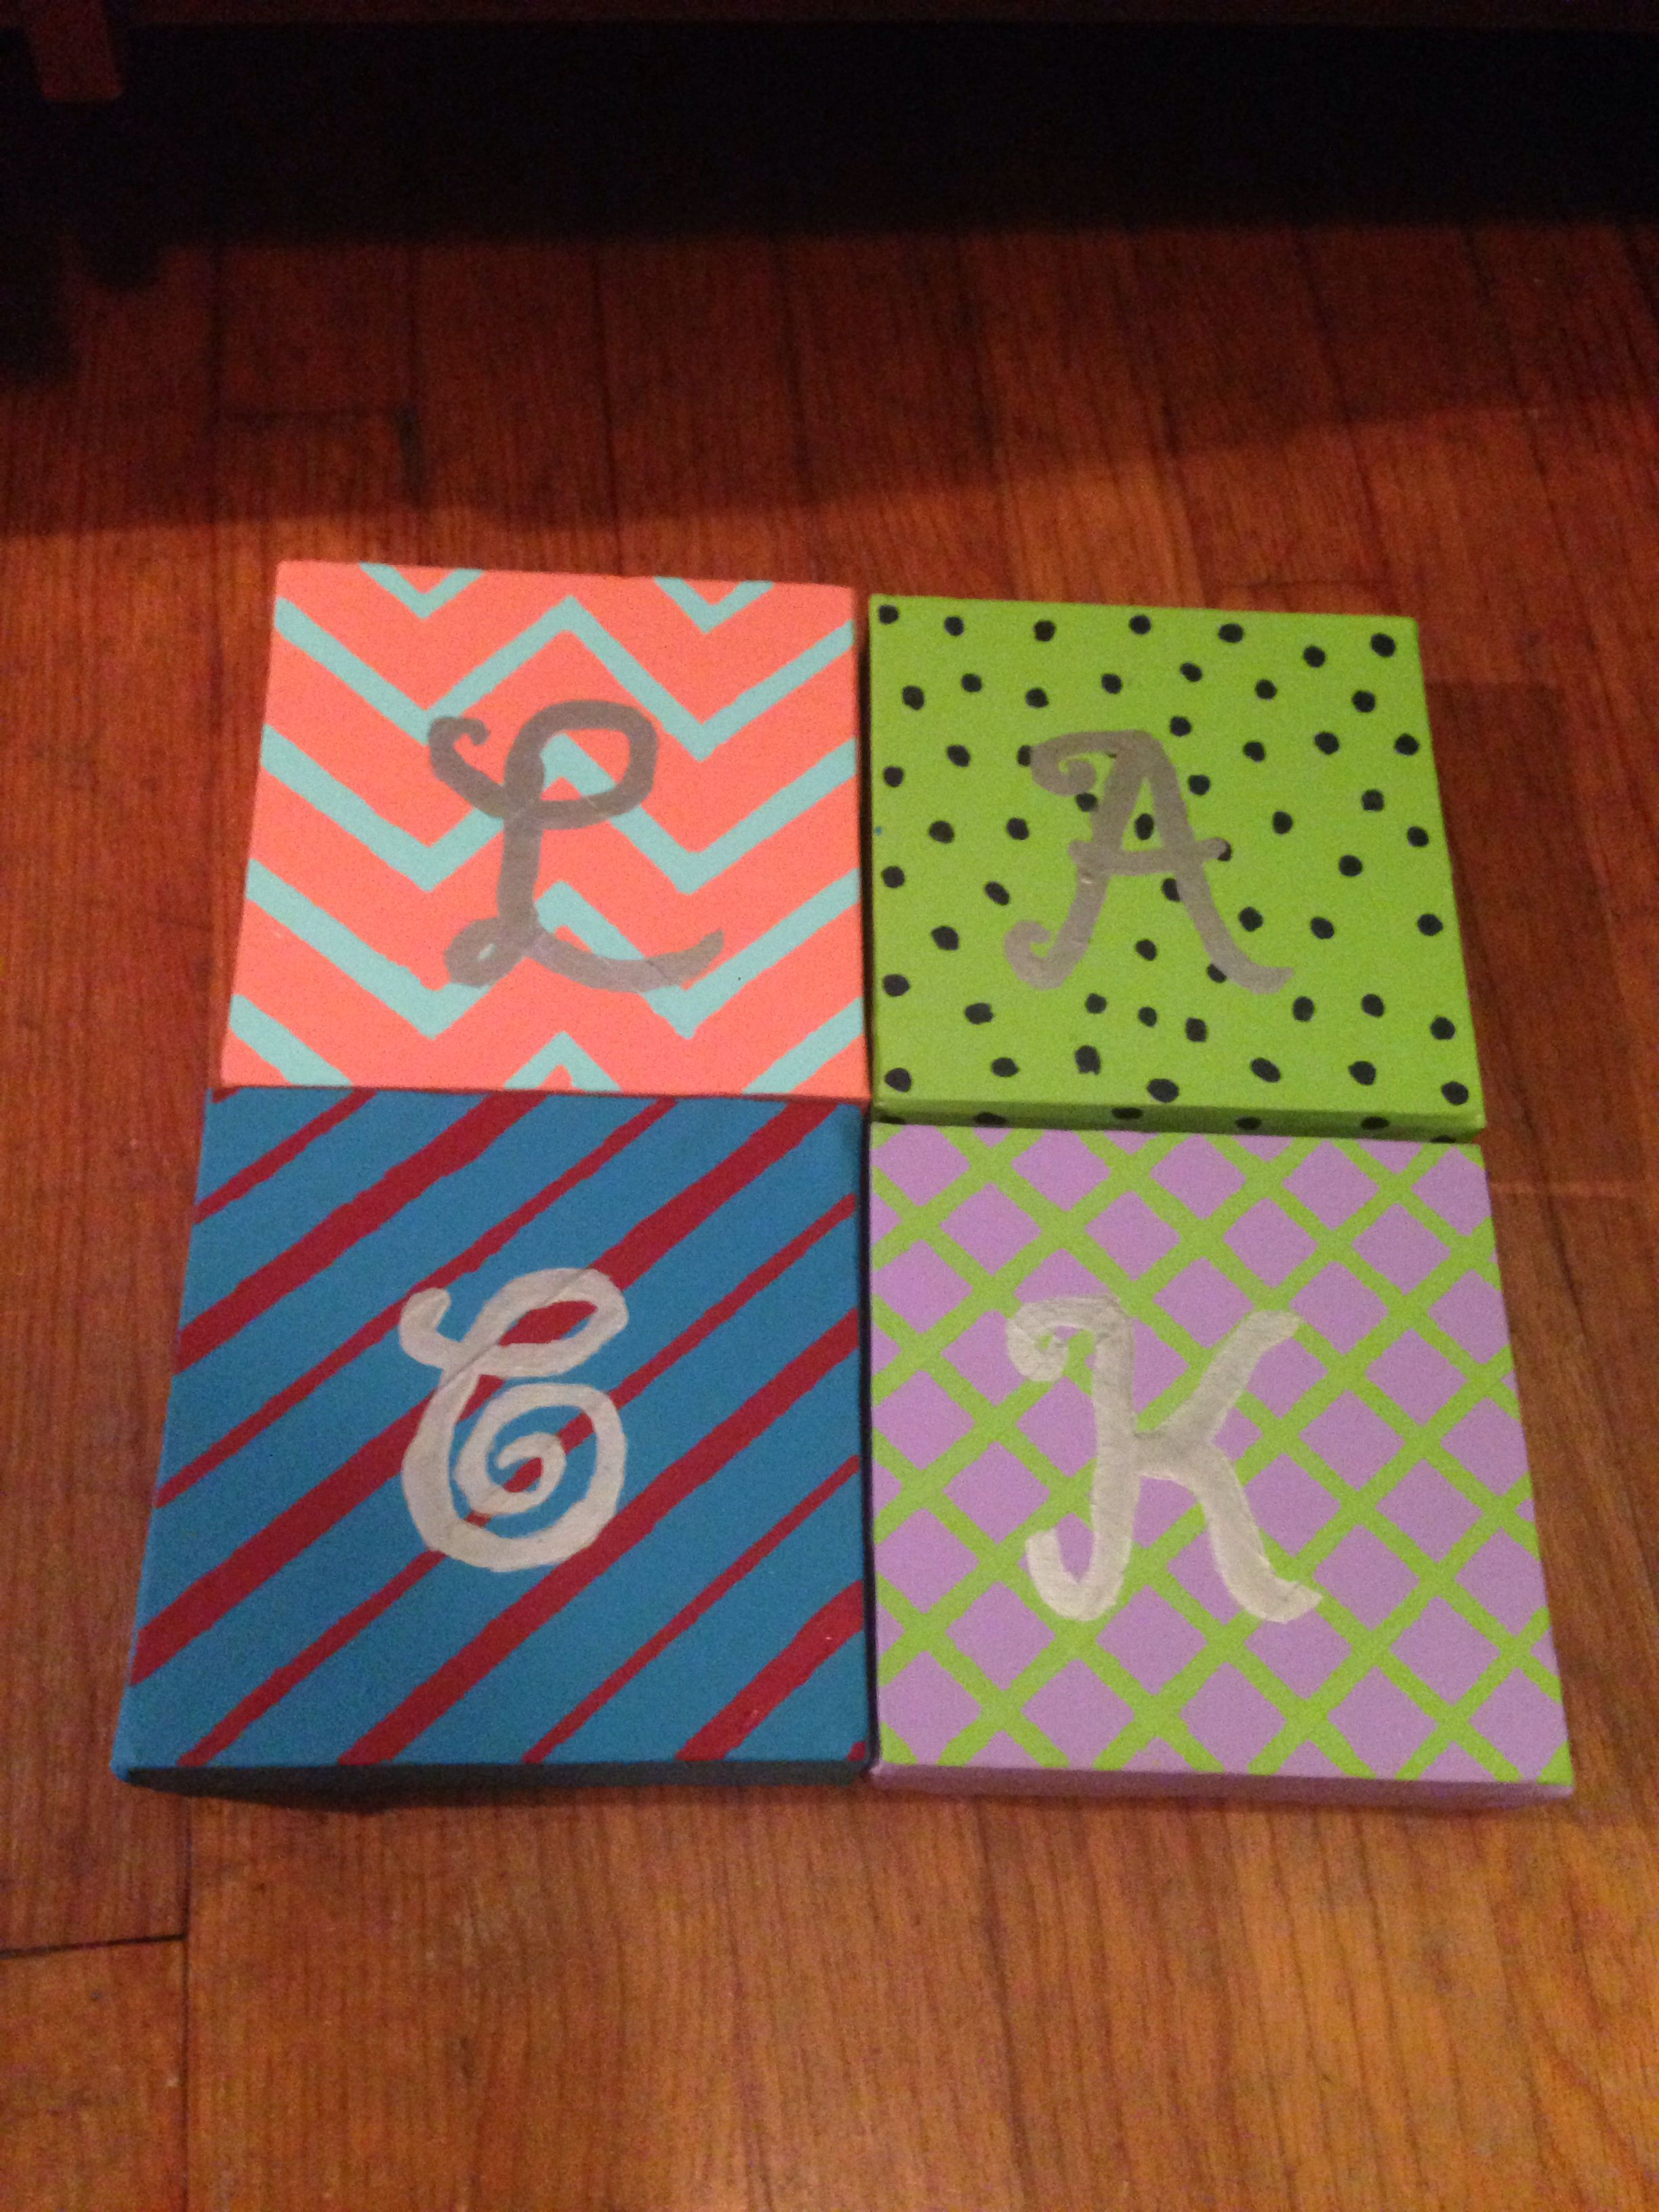 Small Square Canvas Paintings With The Initial Of Our First Name